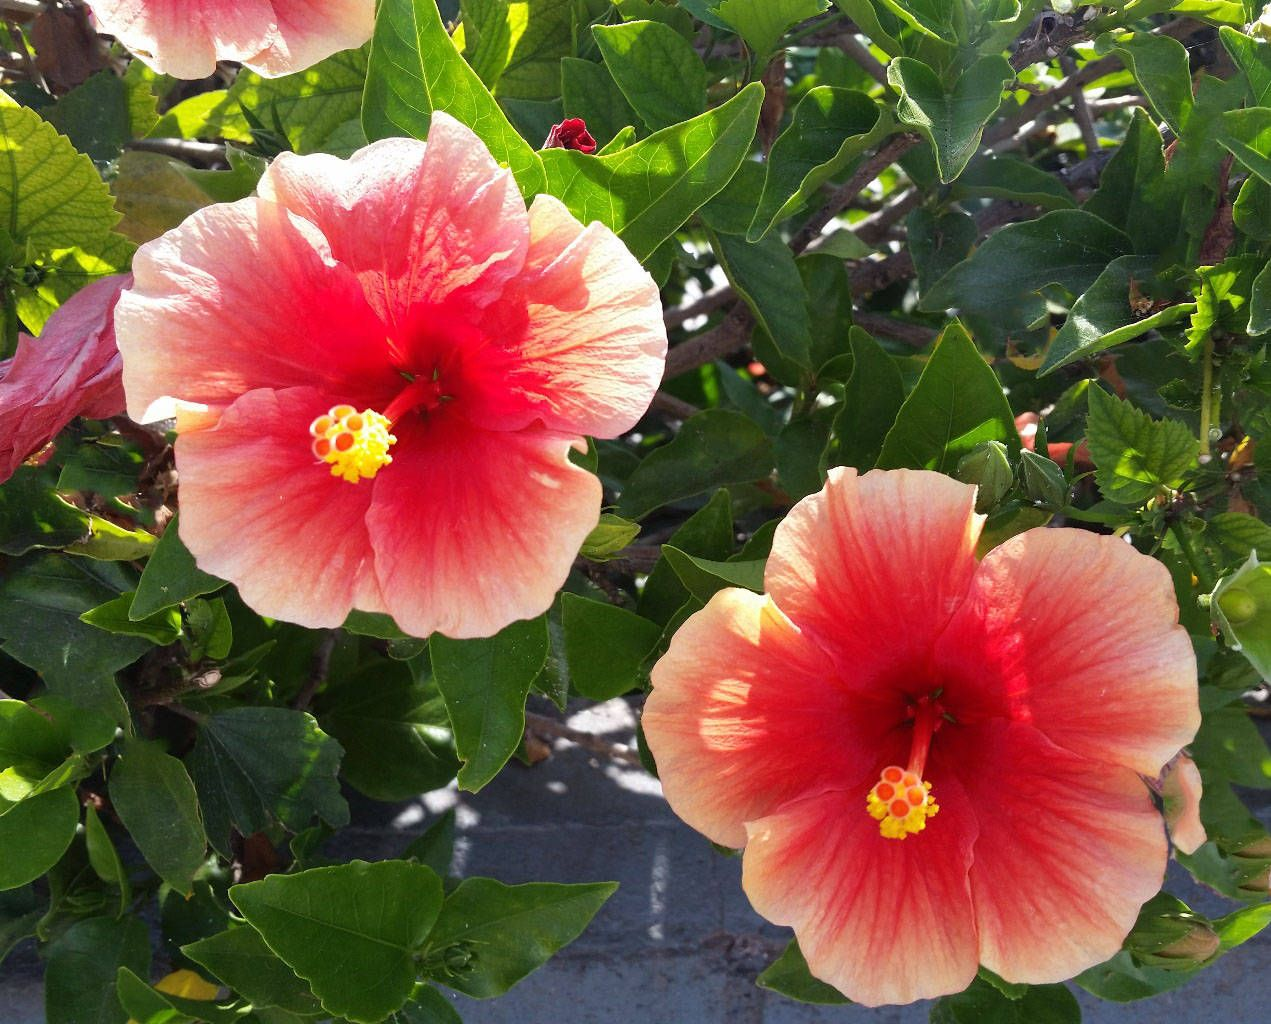 Hibiscus Google Search In 2020 Hibiscus Plant Perennial Plants Plants